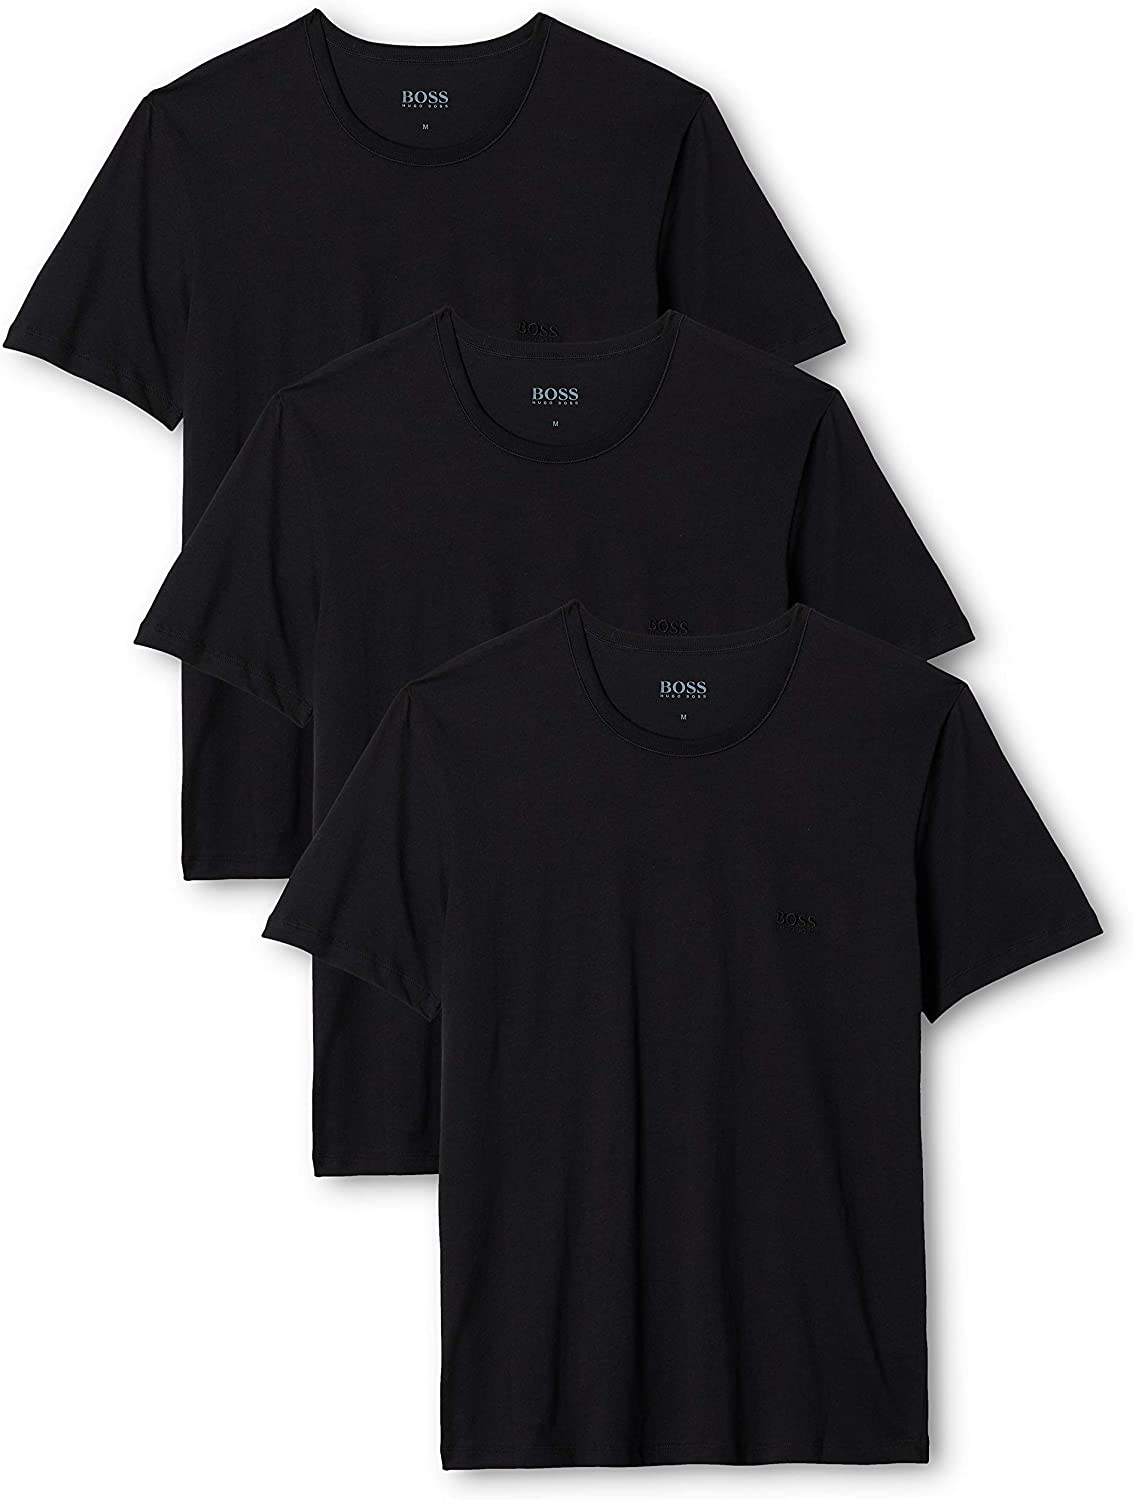 TALLA M. BOSS T-Shirt RN 3p Co Camiseta para Hombre, pack de 3